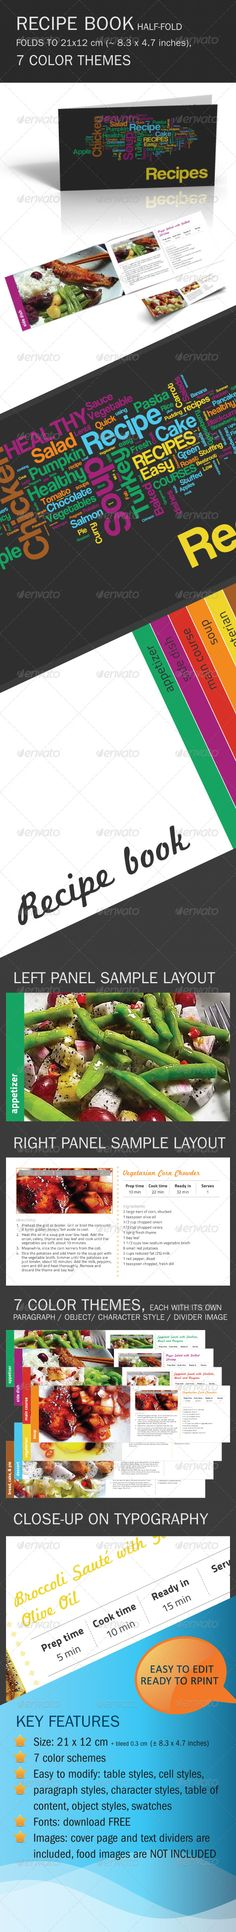 Templates For Microsoft Products Get Geeky Pinterest Cookbook - Adobe indesign cookbook template